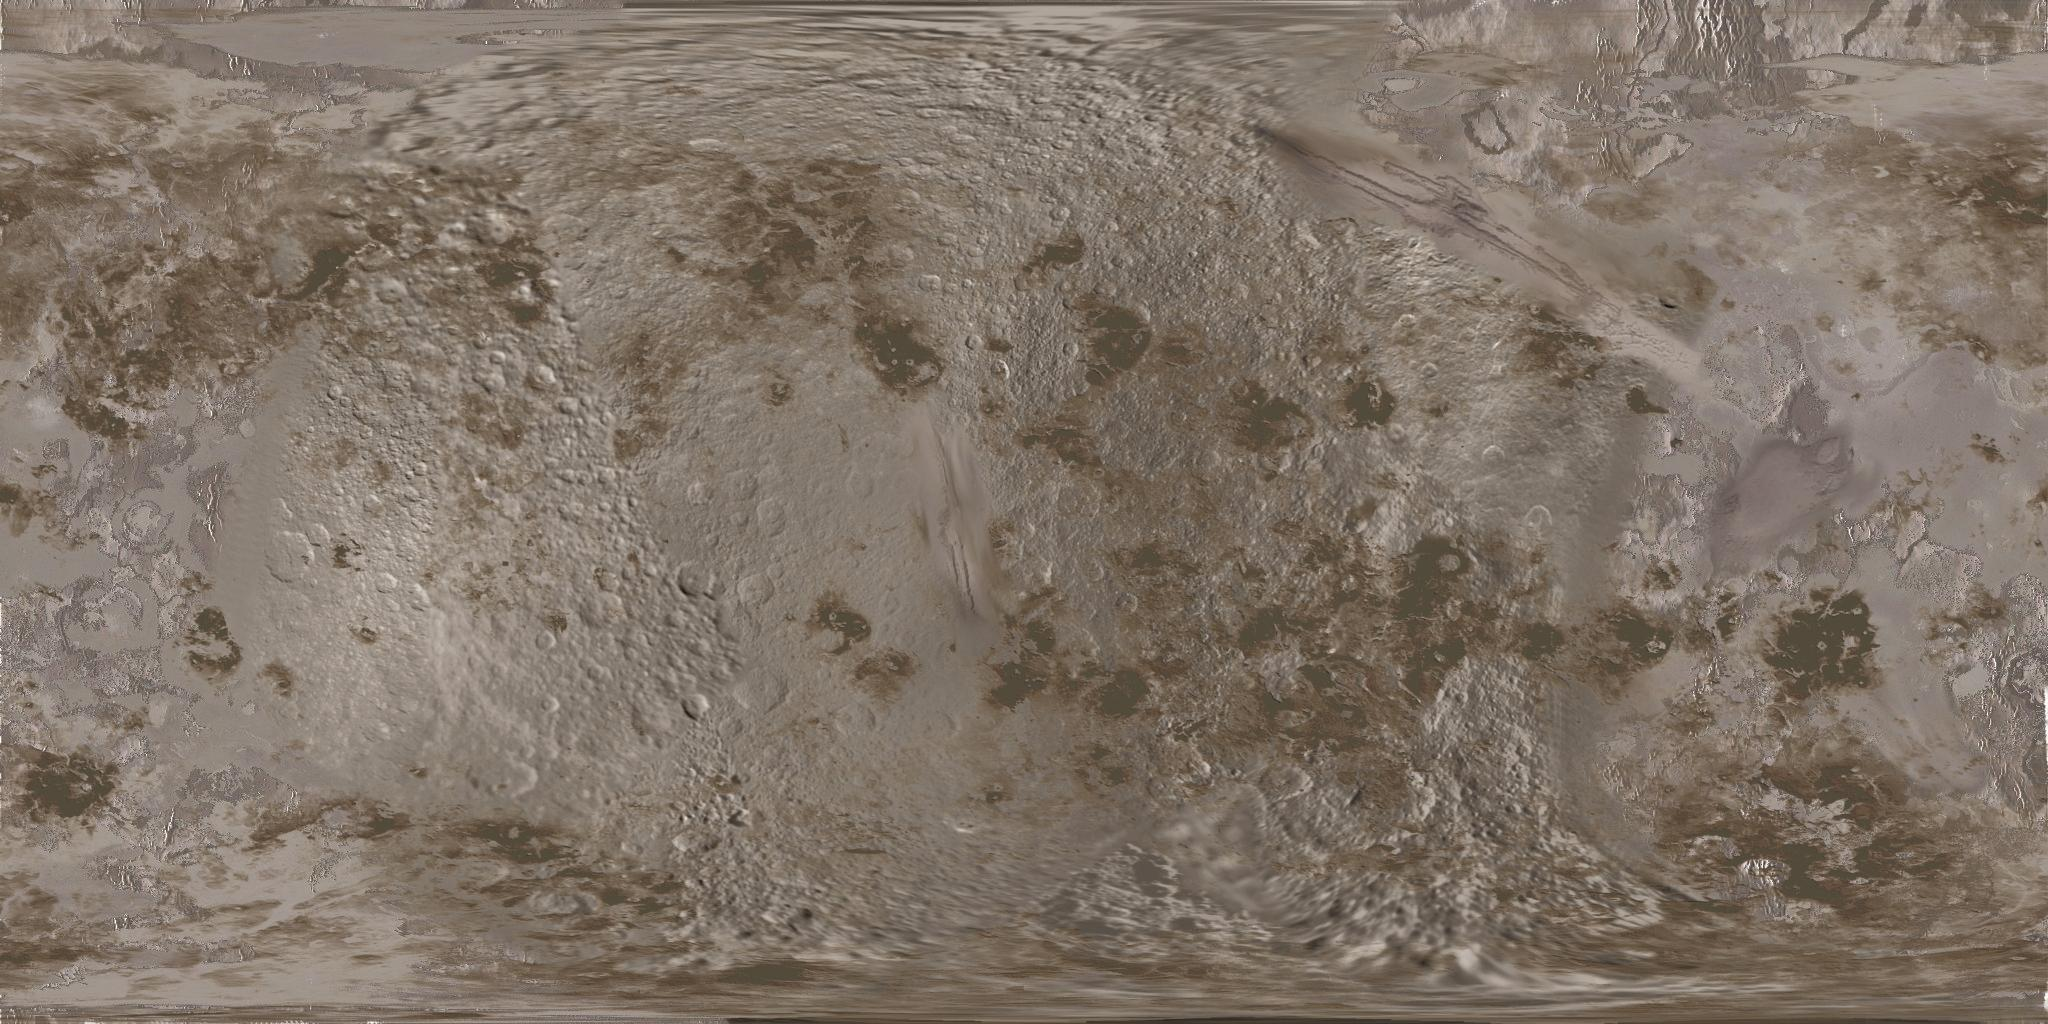 Anshar Surface High Albedo